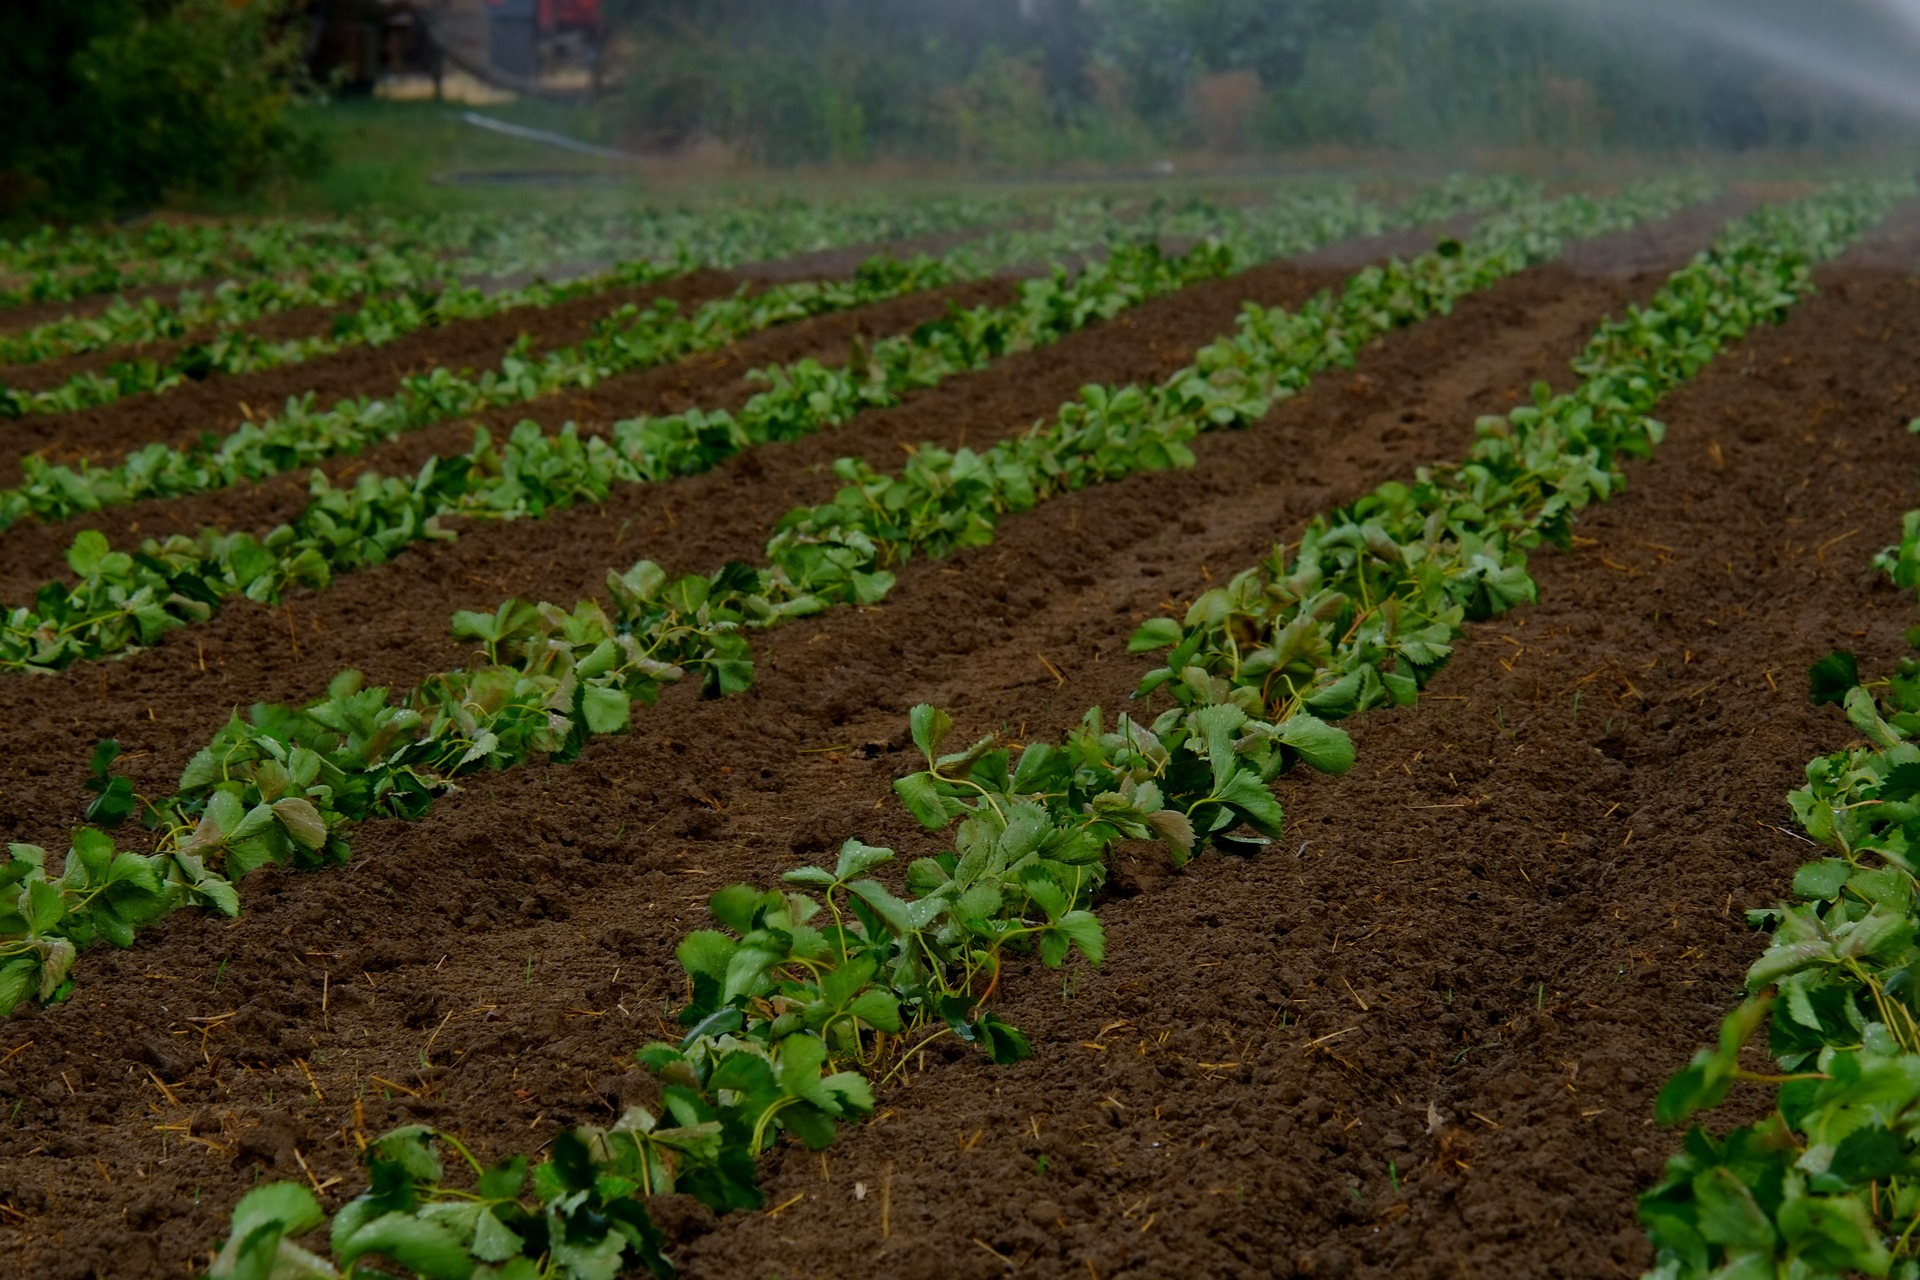 field with leafy green produce